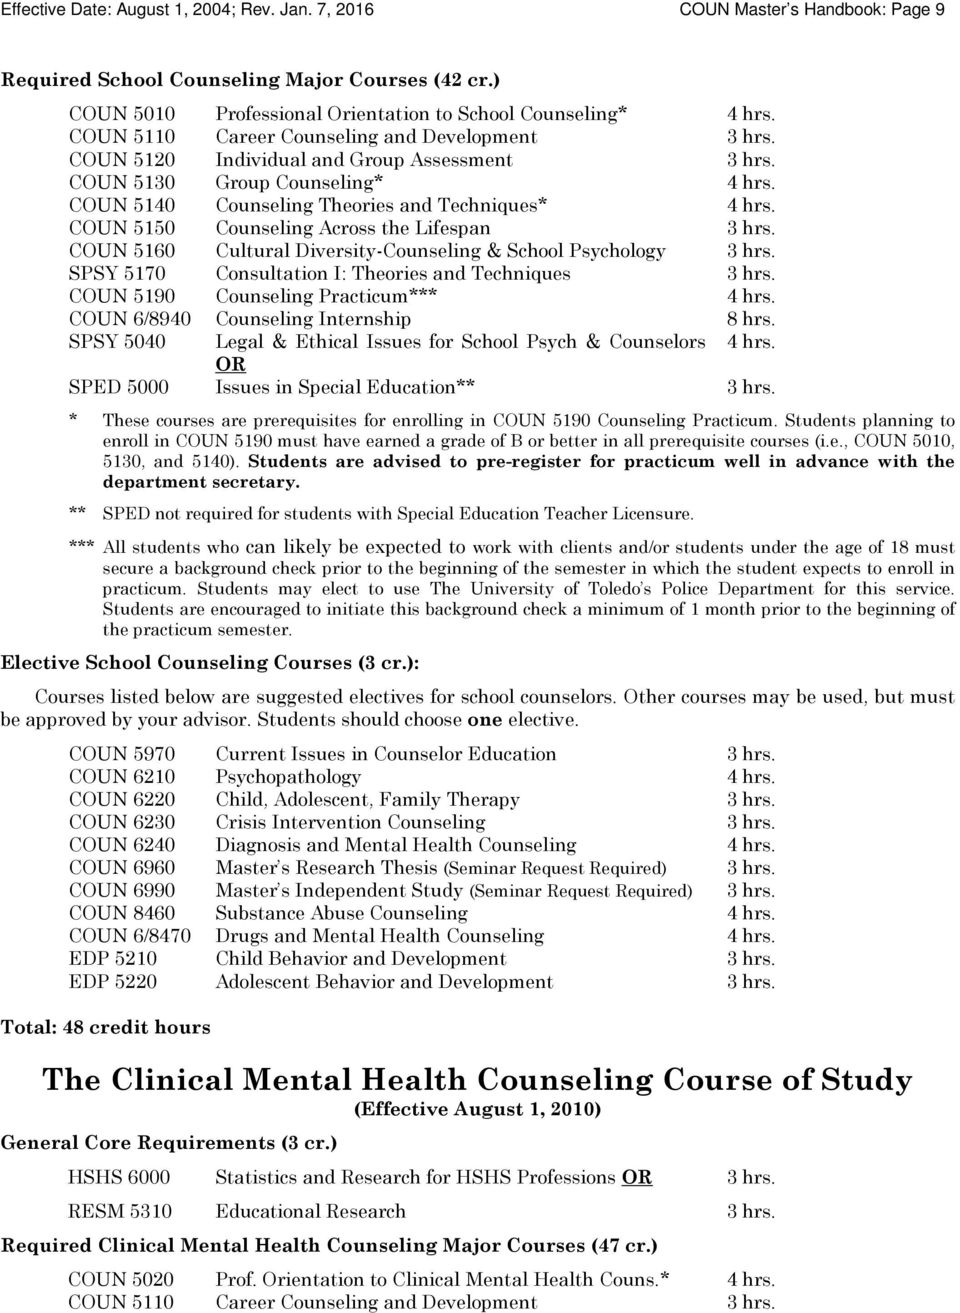 COUN 5150 Counseling Across the Lifespan 3 hrs. COUN 5160 Cultural Diversity-Counseling & School Psychology 3 hrs. SPSY 5170 Consultation I: Theories and Techniques 3 hrs.